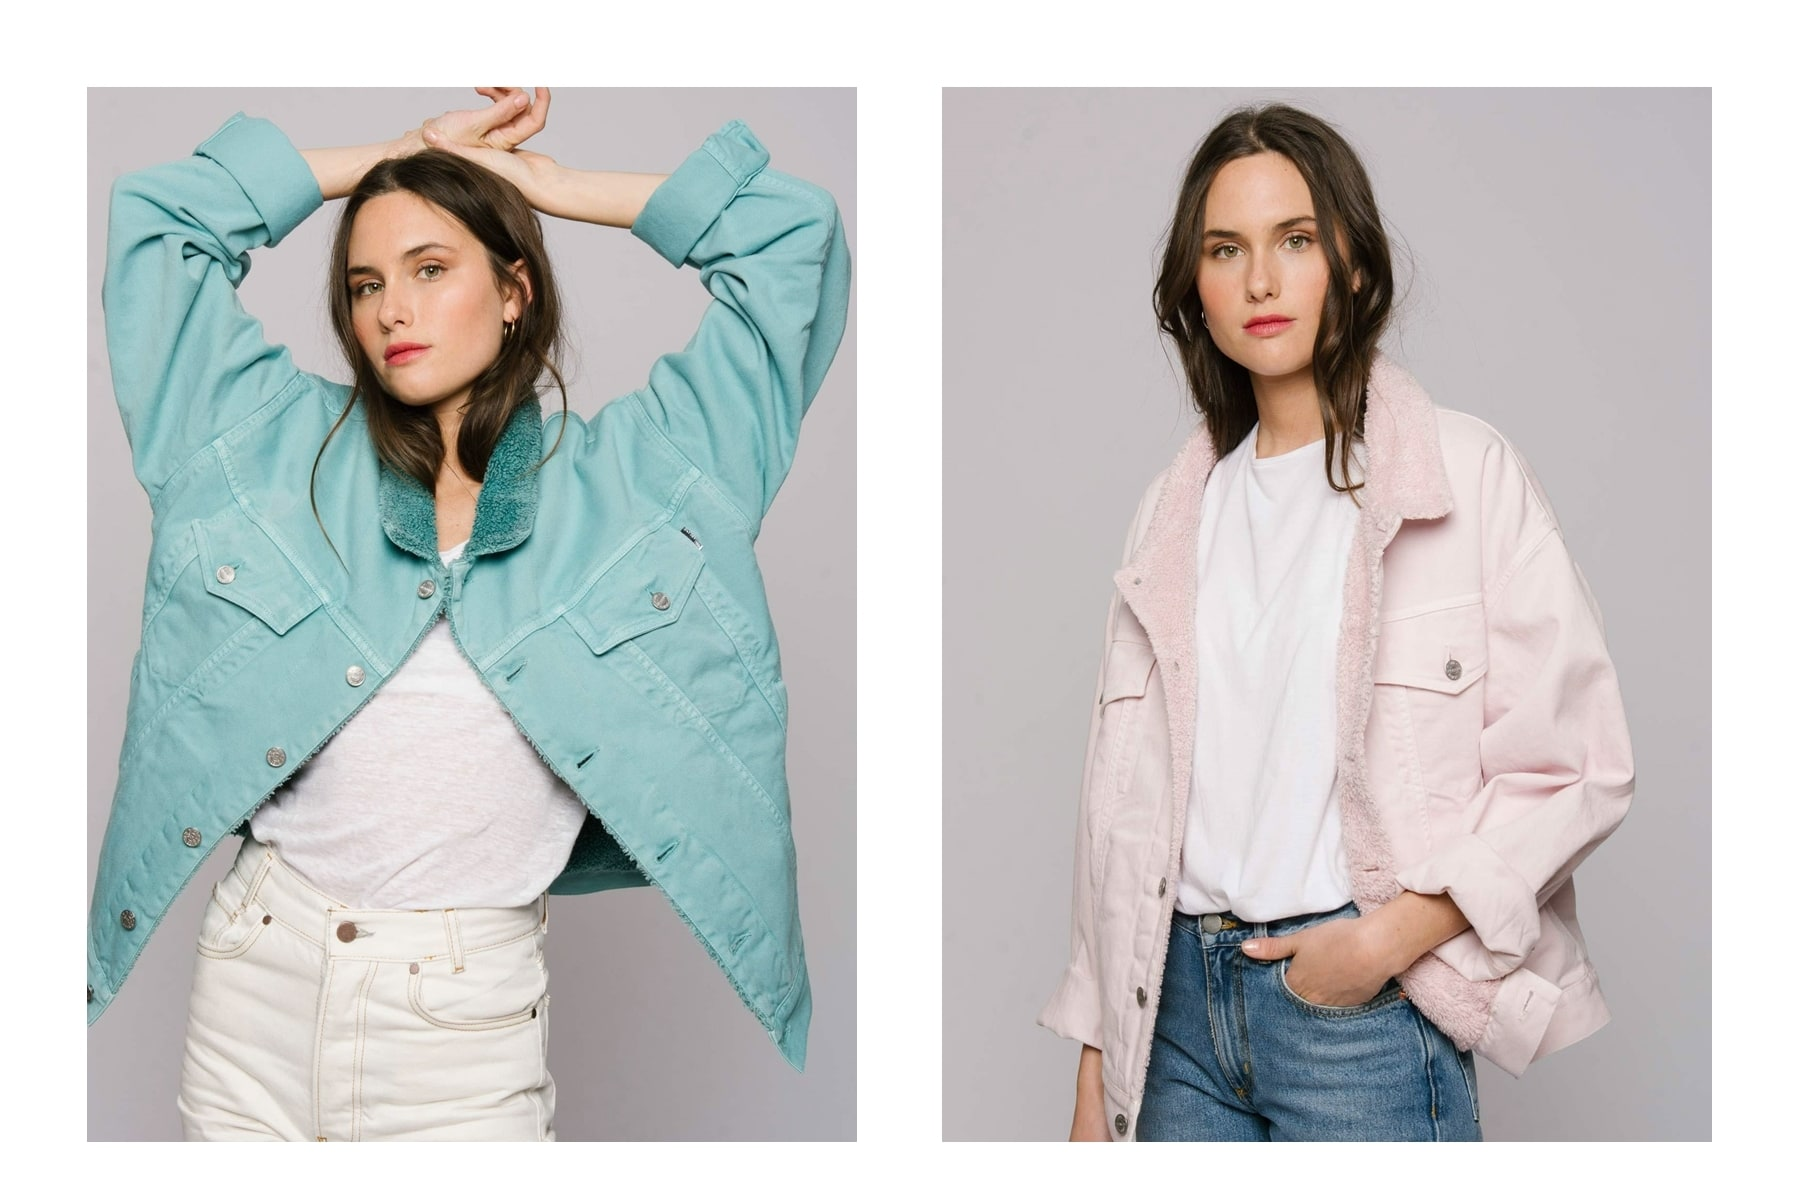 Denim jackets by The Shearline are comfortably chic and let you customize your style with a custom colored inner and outer lining